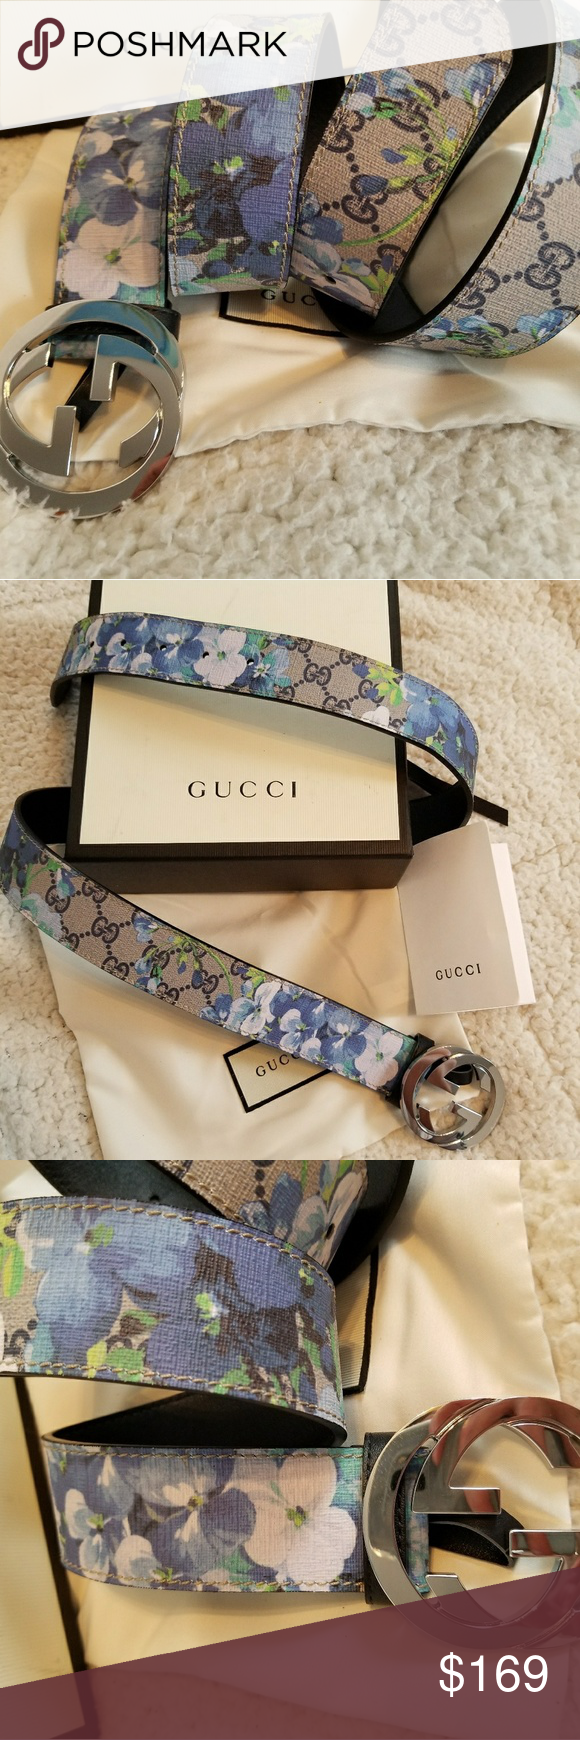 fb832177691 Authentic Gucci Belt Blue Blooms Monogram Print Authentic Gucci Belt Blue  Blooms Monogram Print with Silver GG Buckle. Nice! Comes with dust bag and  box.